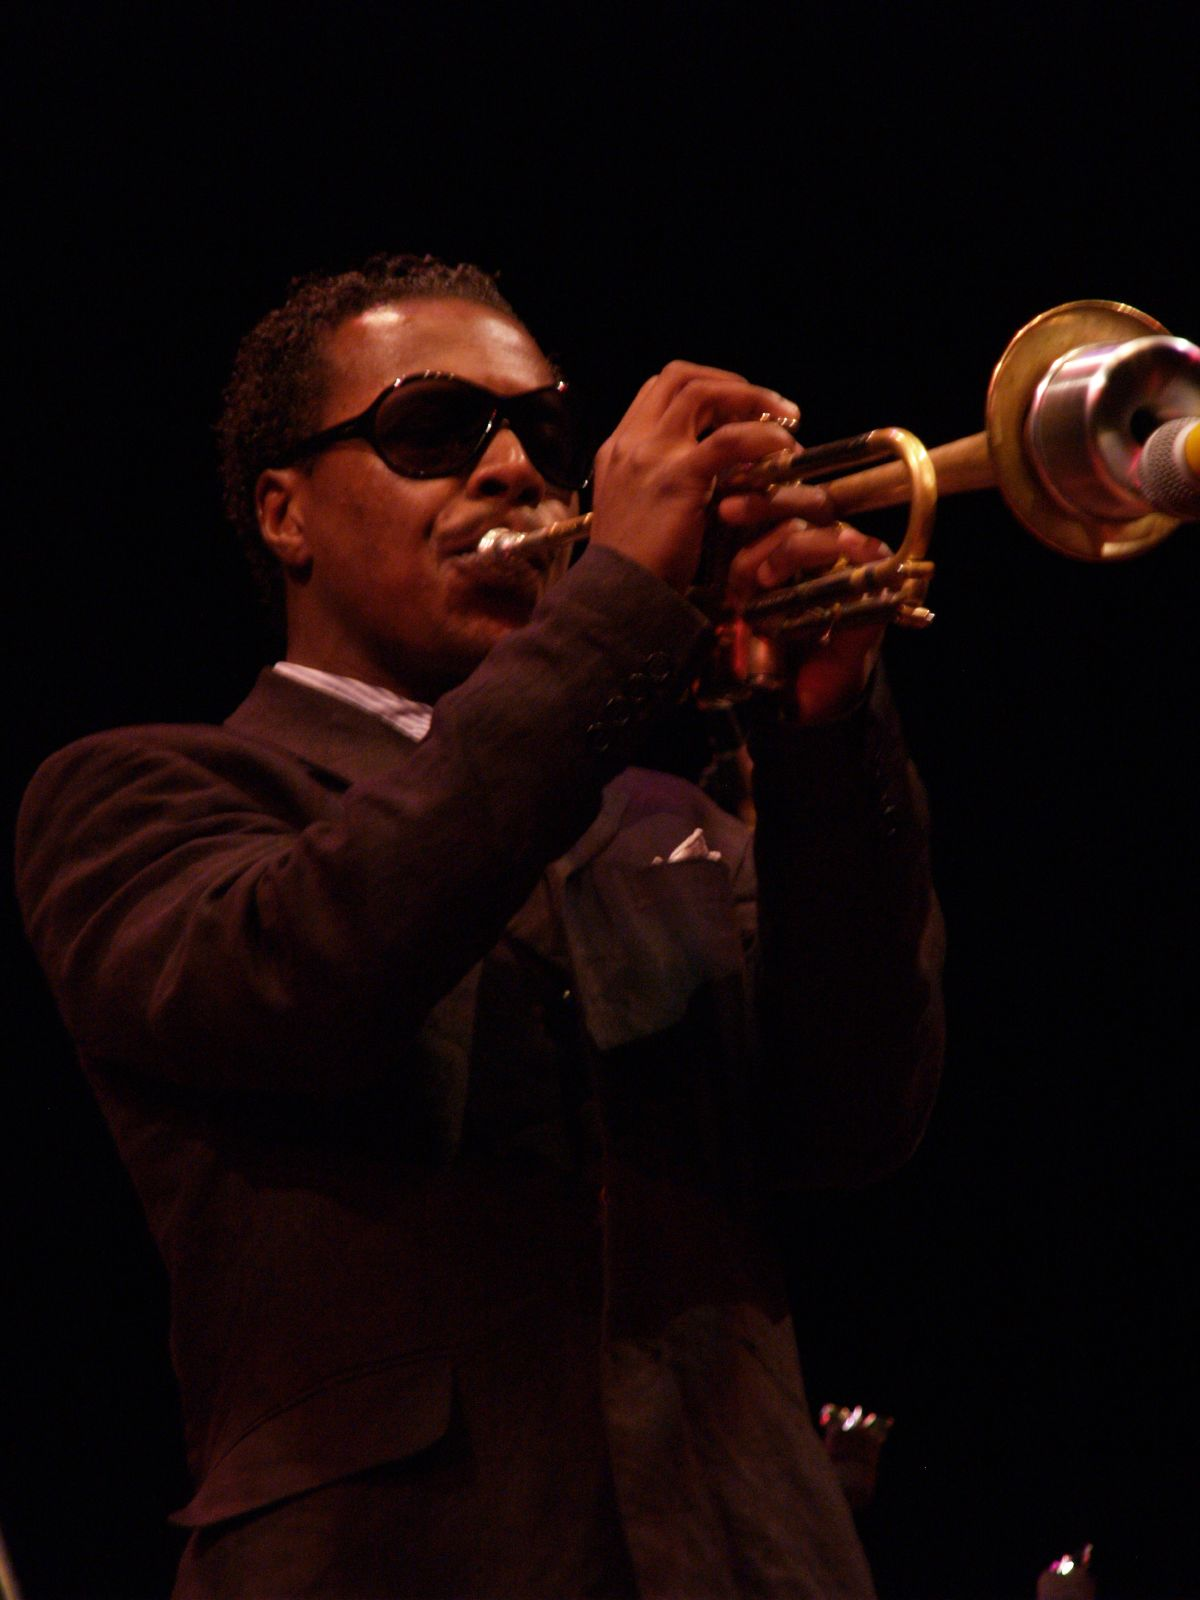 Roy Anthony Hargrove born October 16 1969 is an American jazz trumpeter He won worldwide notice after winning two Grammy Awards for differing types of music in